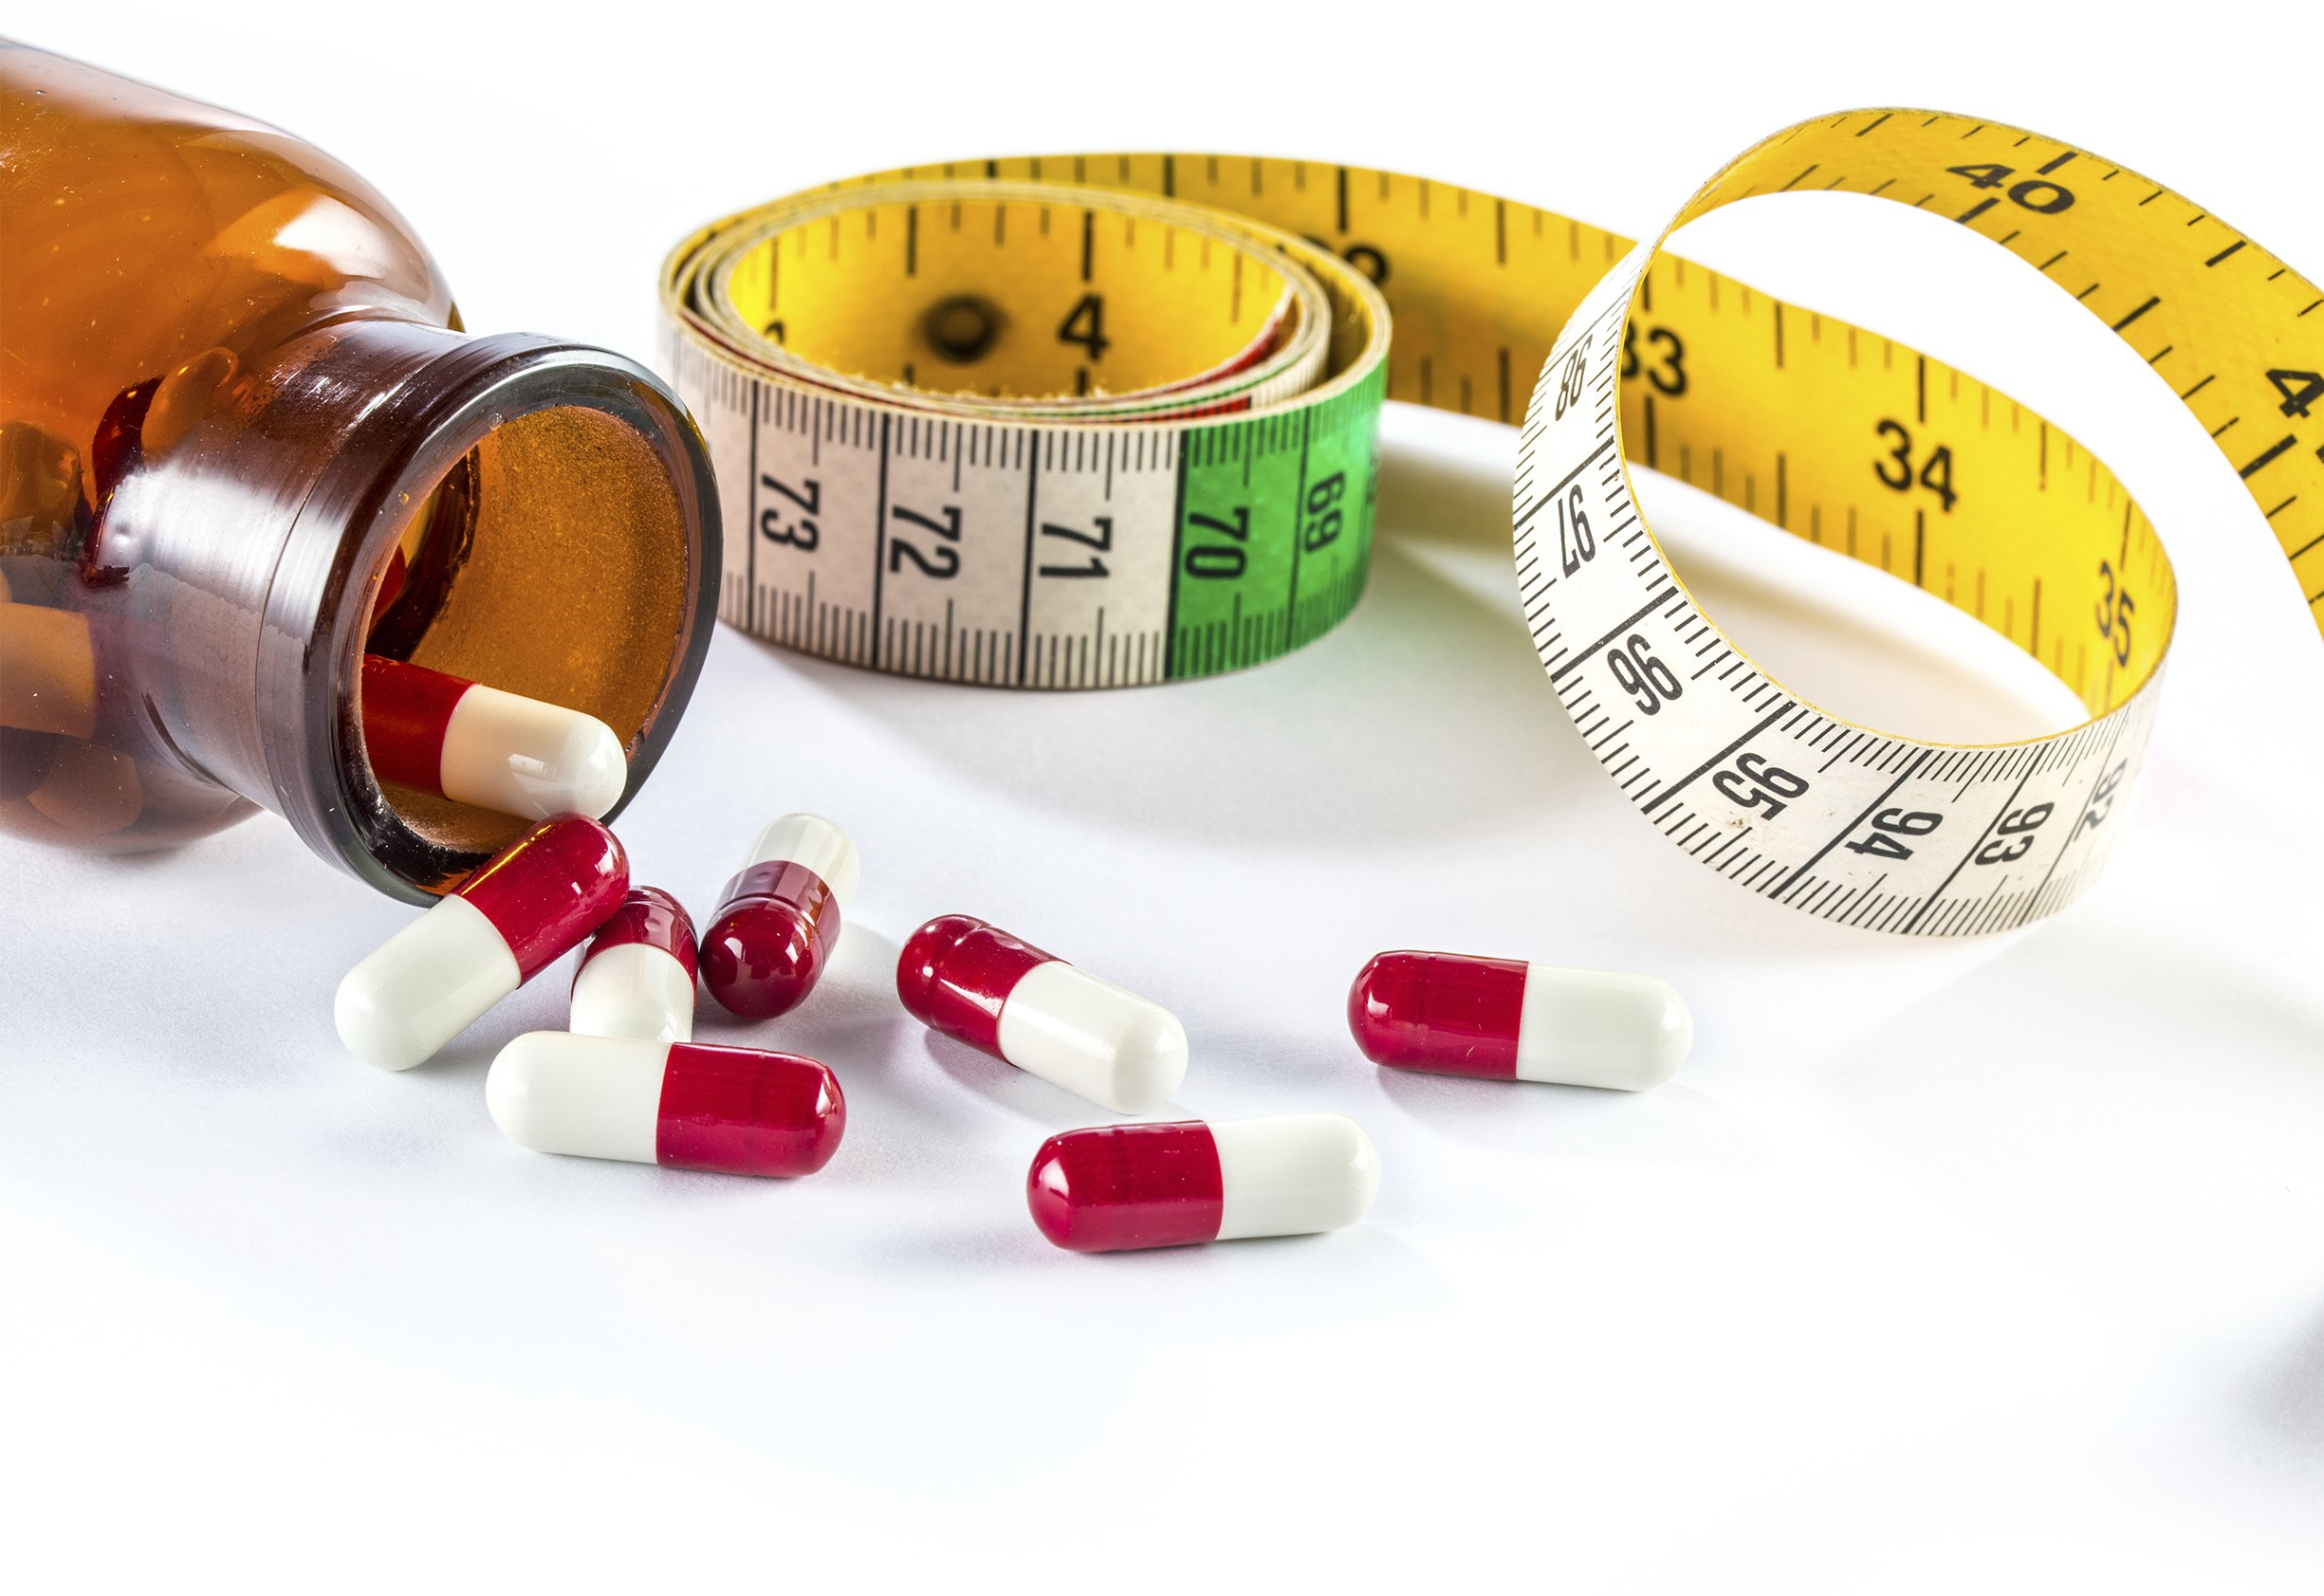 UAE orders withdrawal of weight loss supplements